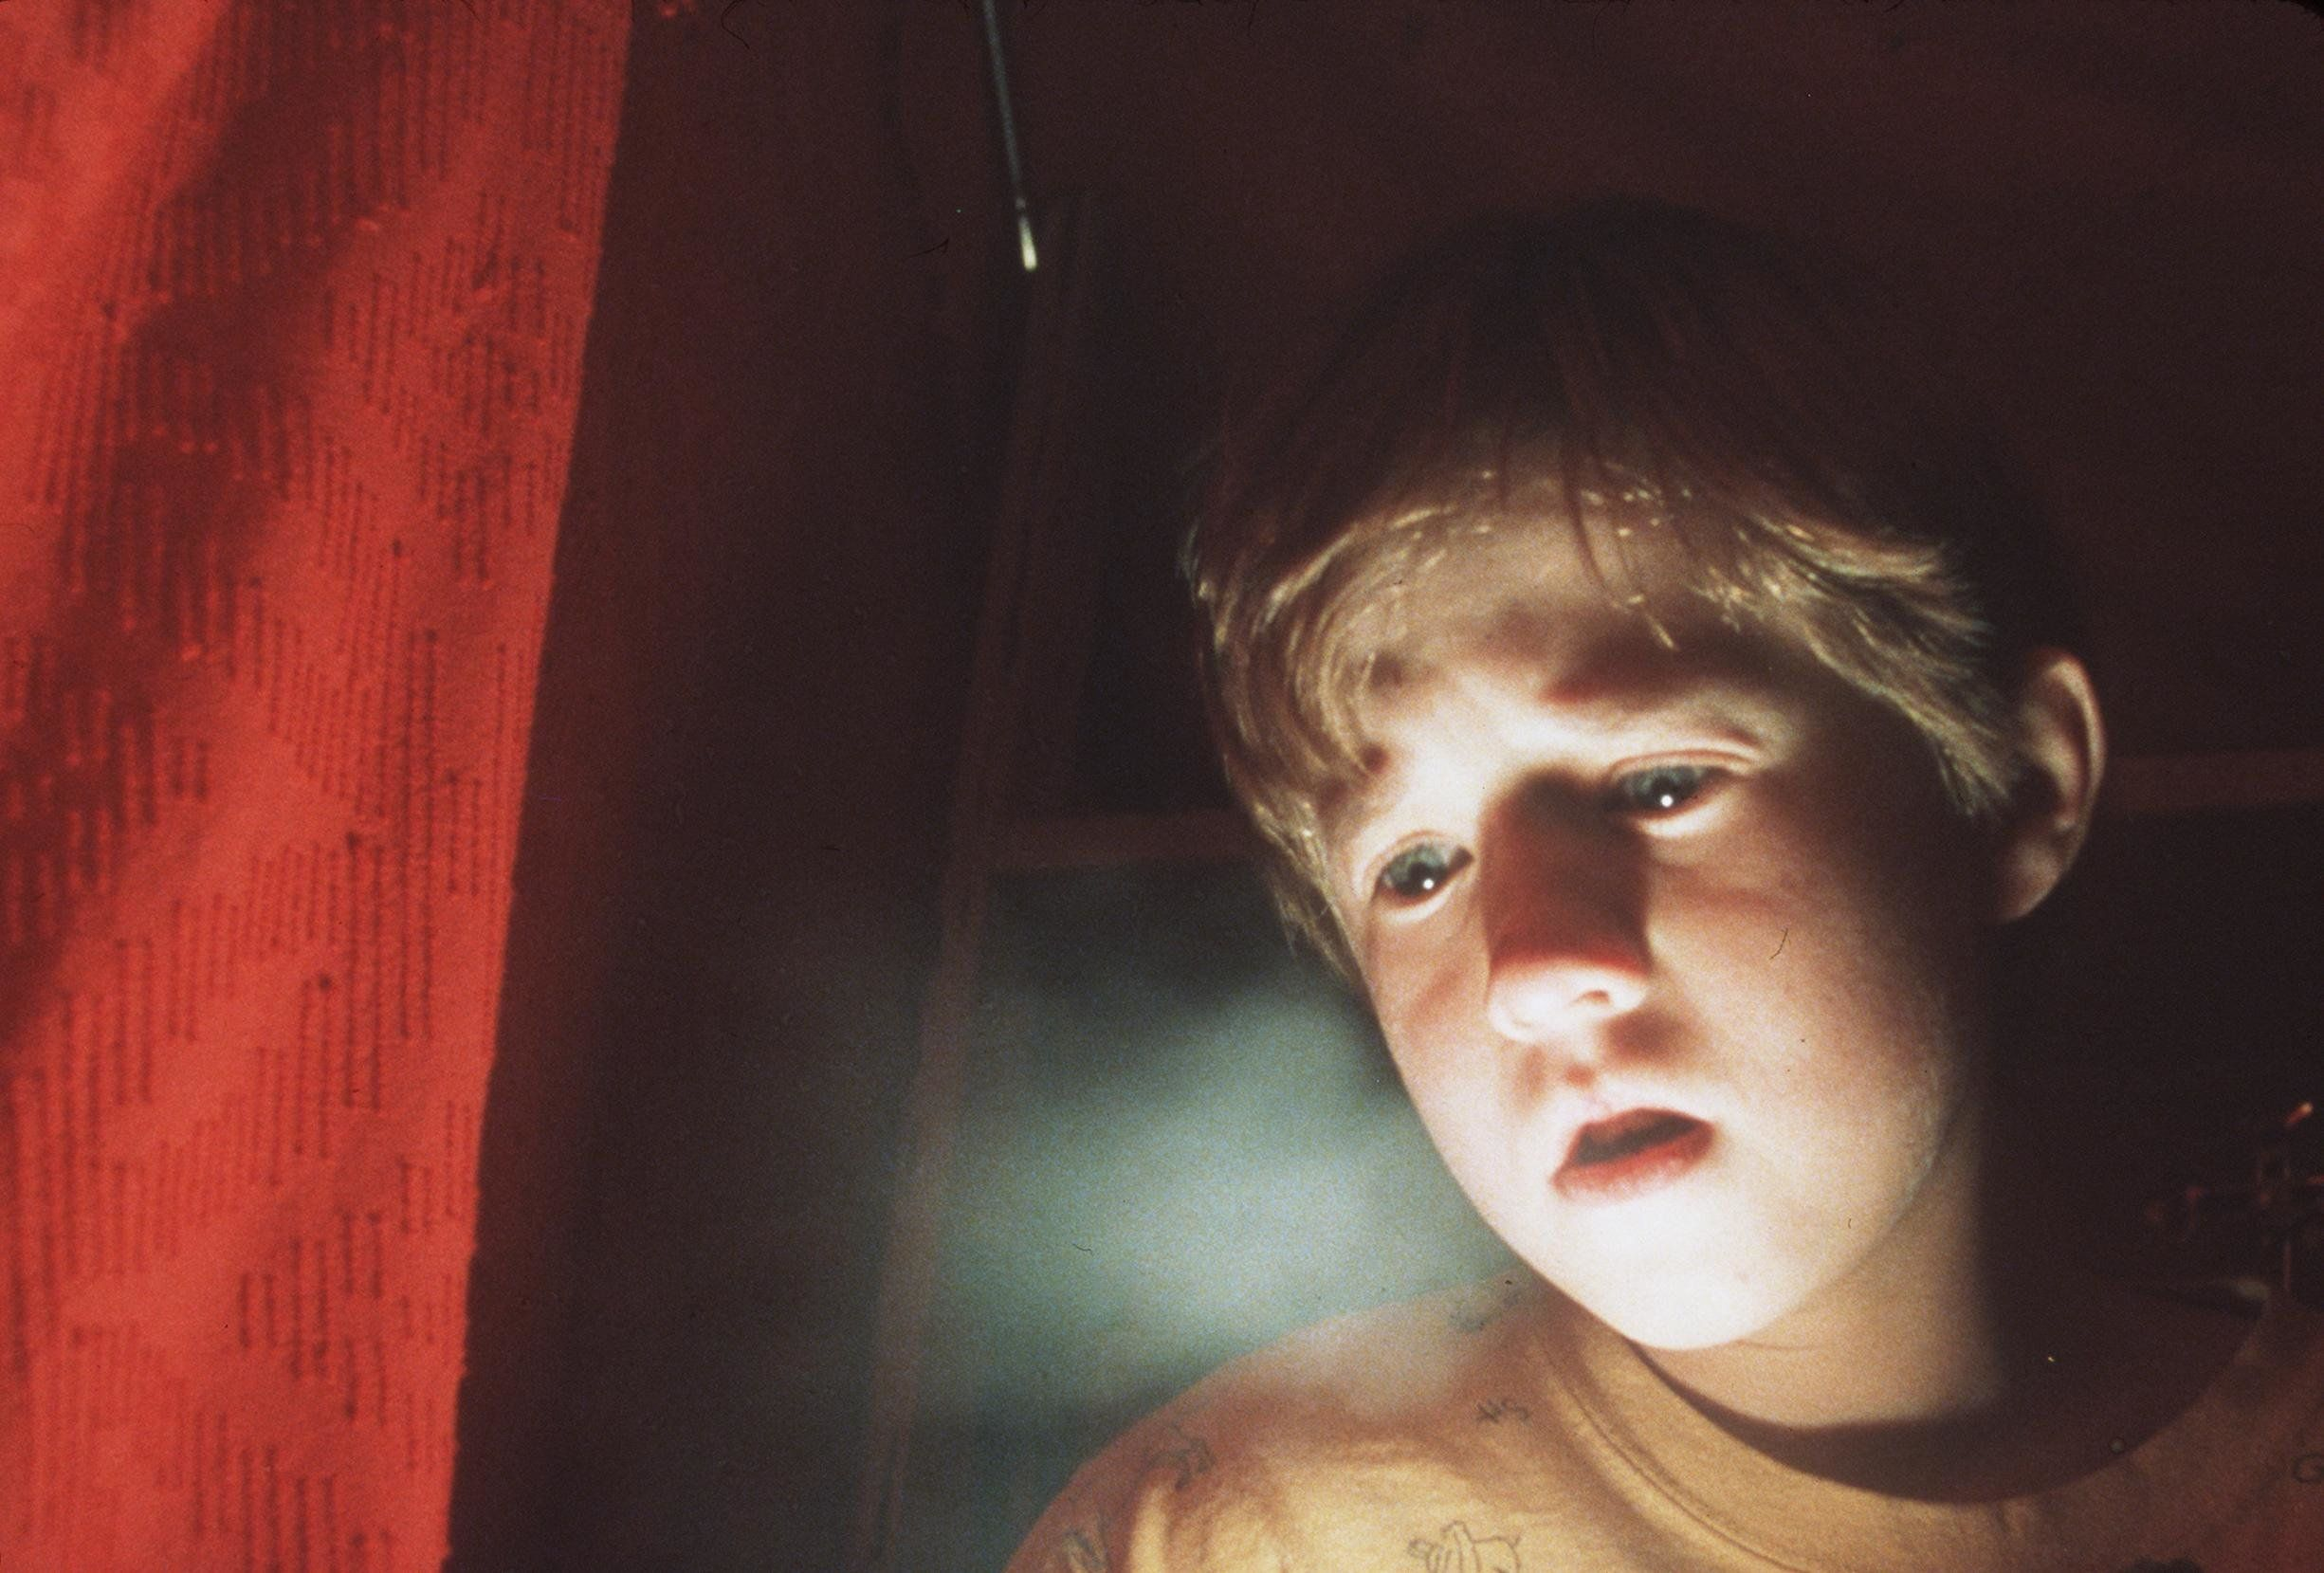 Frightened By His Paranormal Powers, 8-Year-Old Cole Sear (Haley Joel Osment) Is Too Young To Understand His Purpose In 'The Sixth Sense.' 1999 Spyglass Entertainment Group, Lp. All Rights Reserved. (Photo By Getty Images)